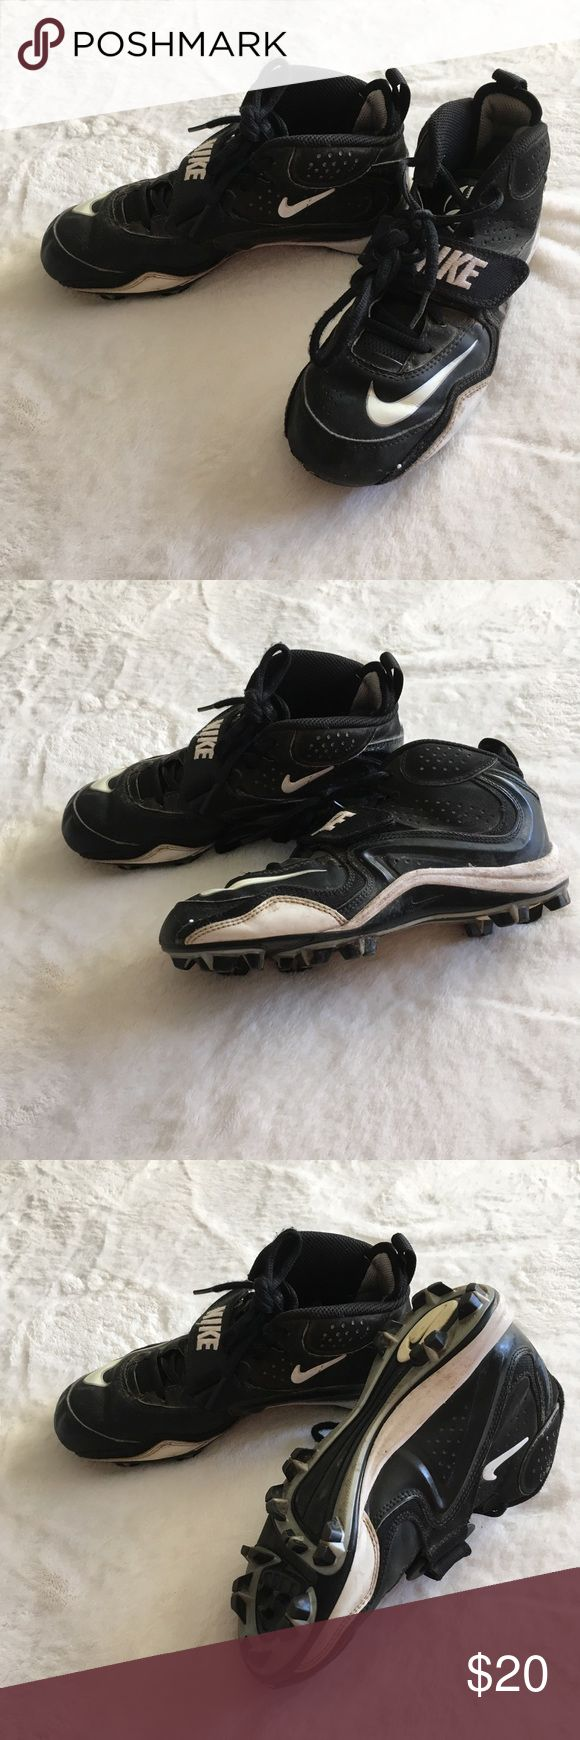 Nike size 4 youth football cleats Youth size 4 cleats by Nike Nike Shoes Sneakers